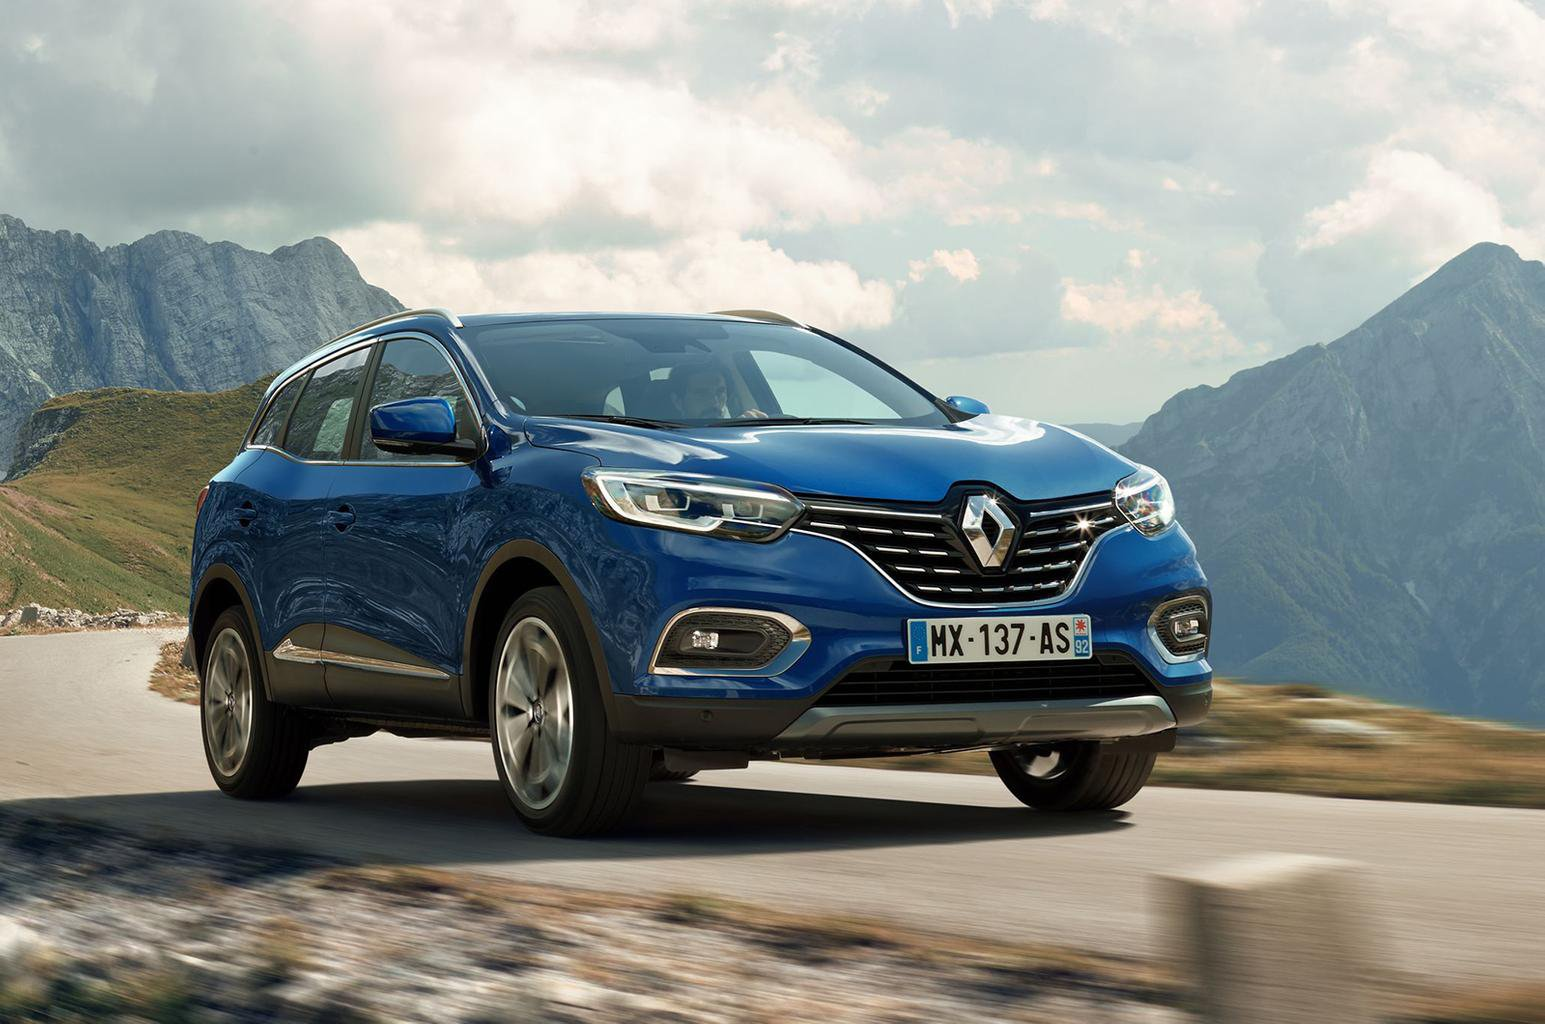 2019 Renault Kadjar – price, specs and release date